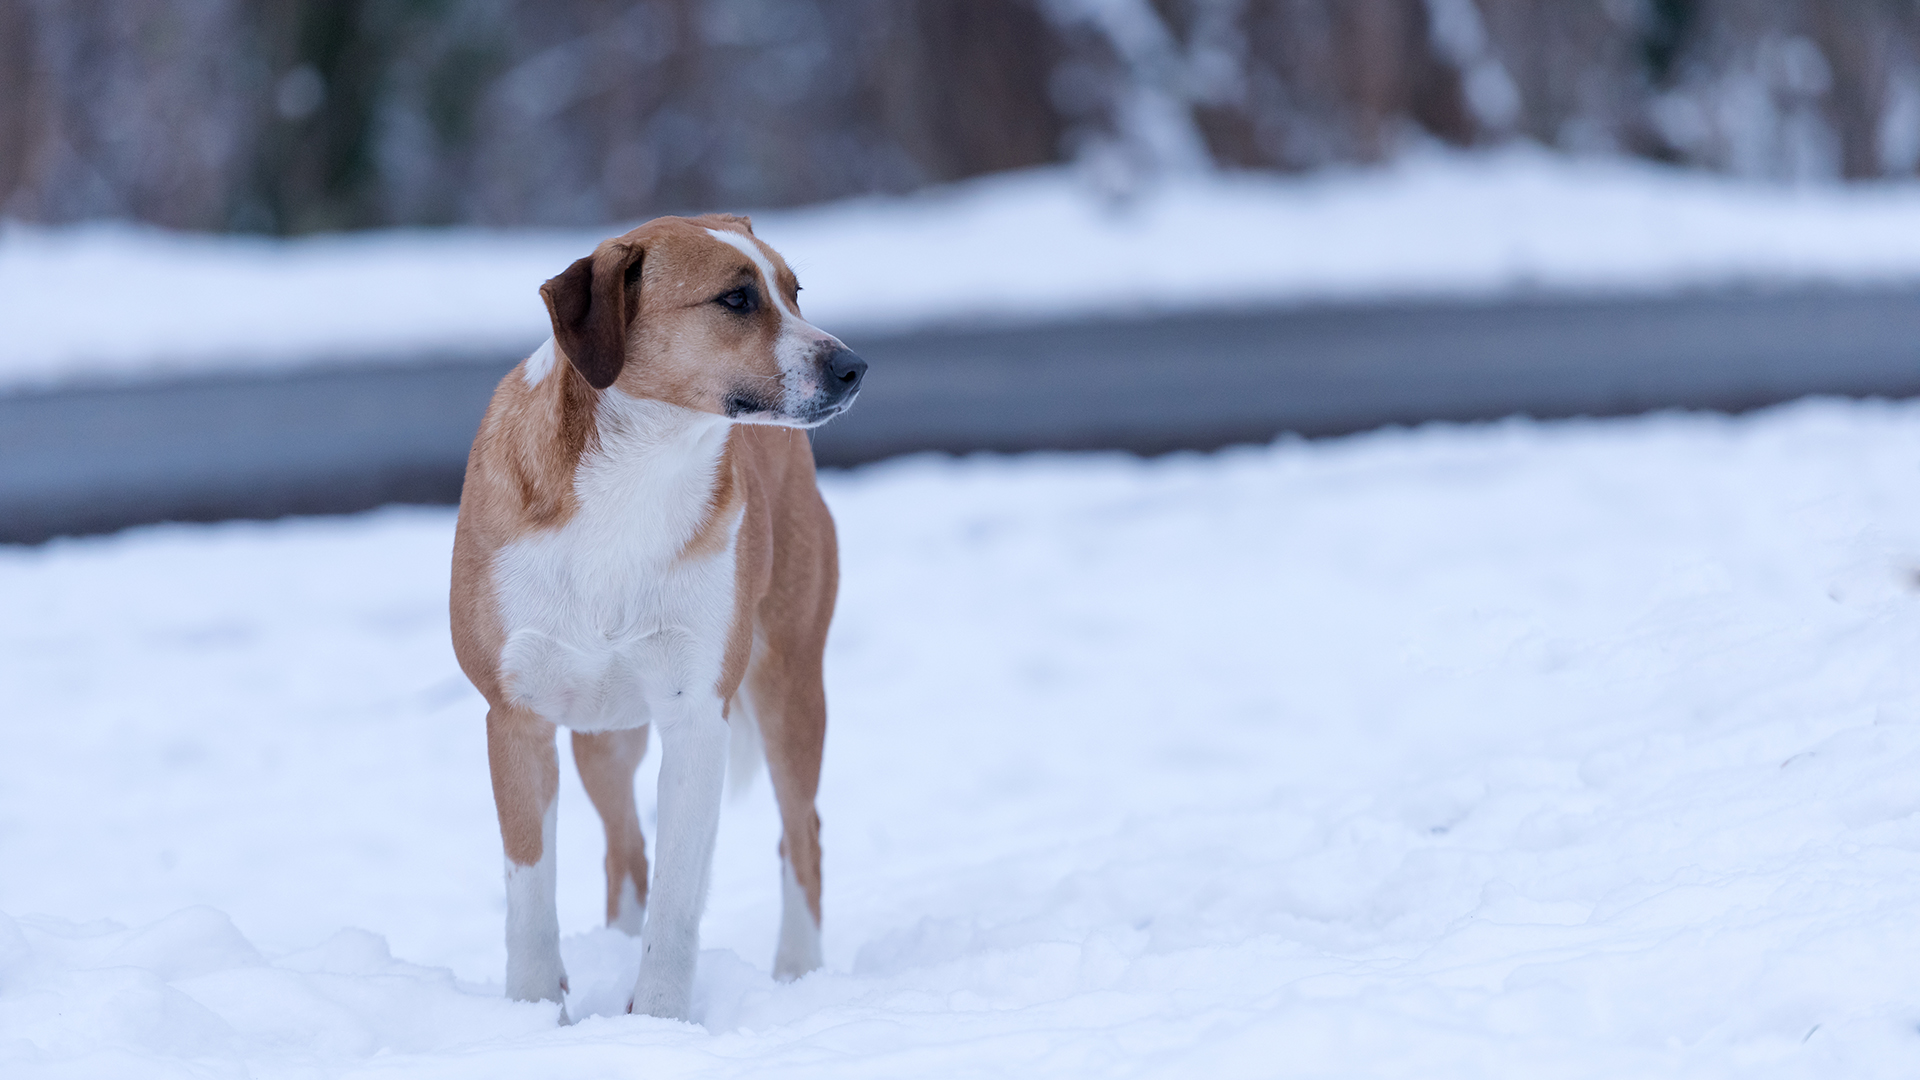 How To Help Dogs Cats Left Out In Freezing Cold Weather